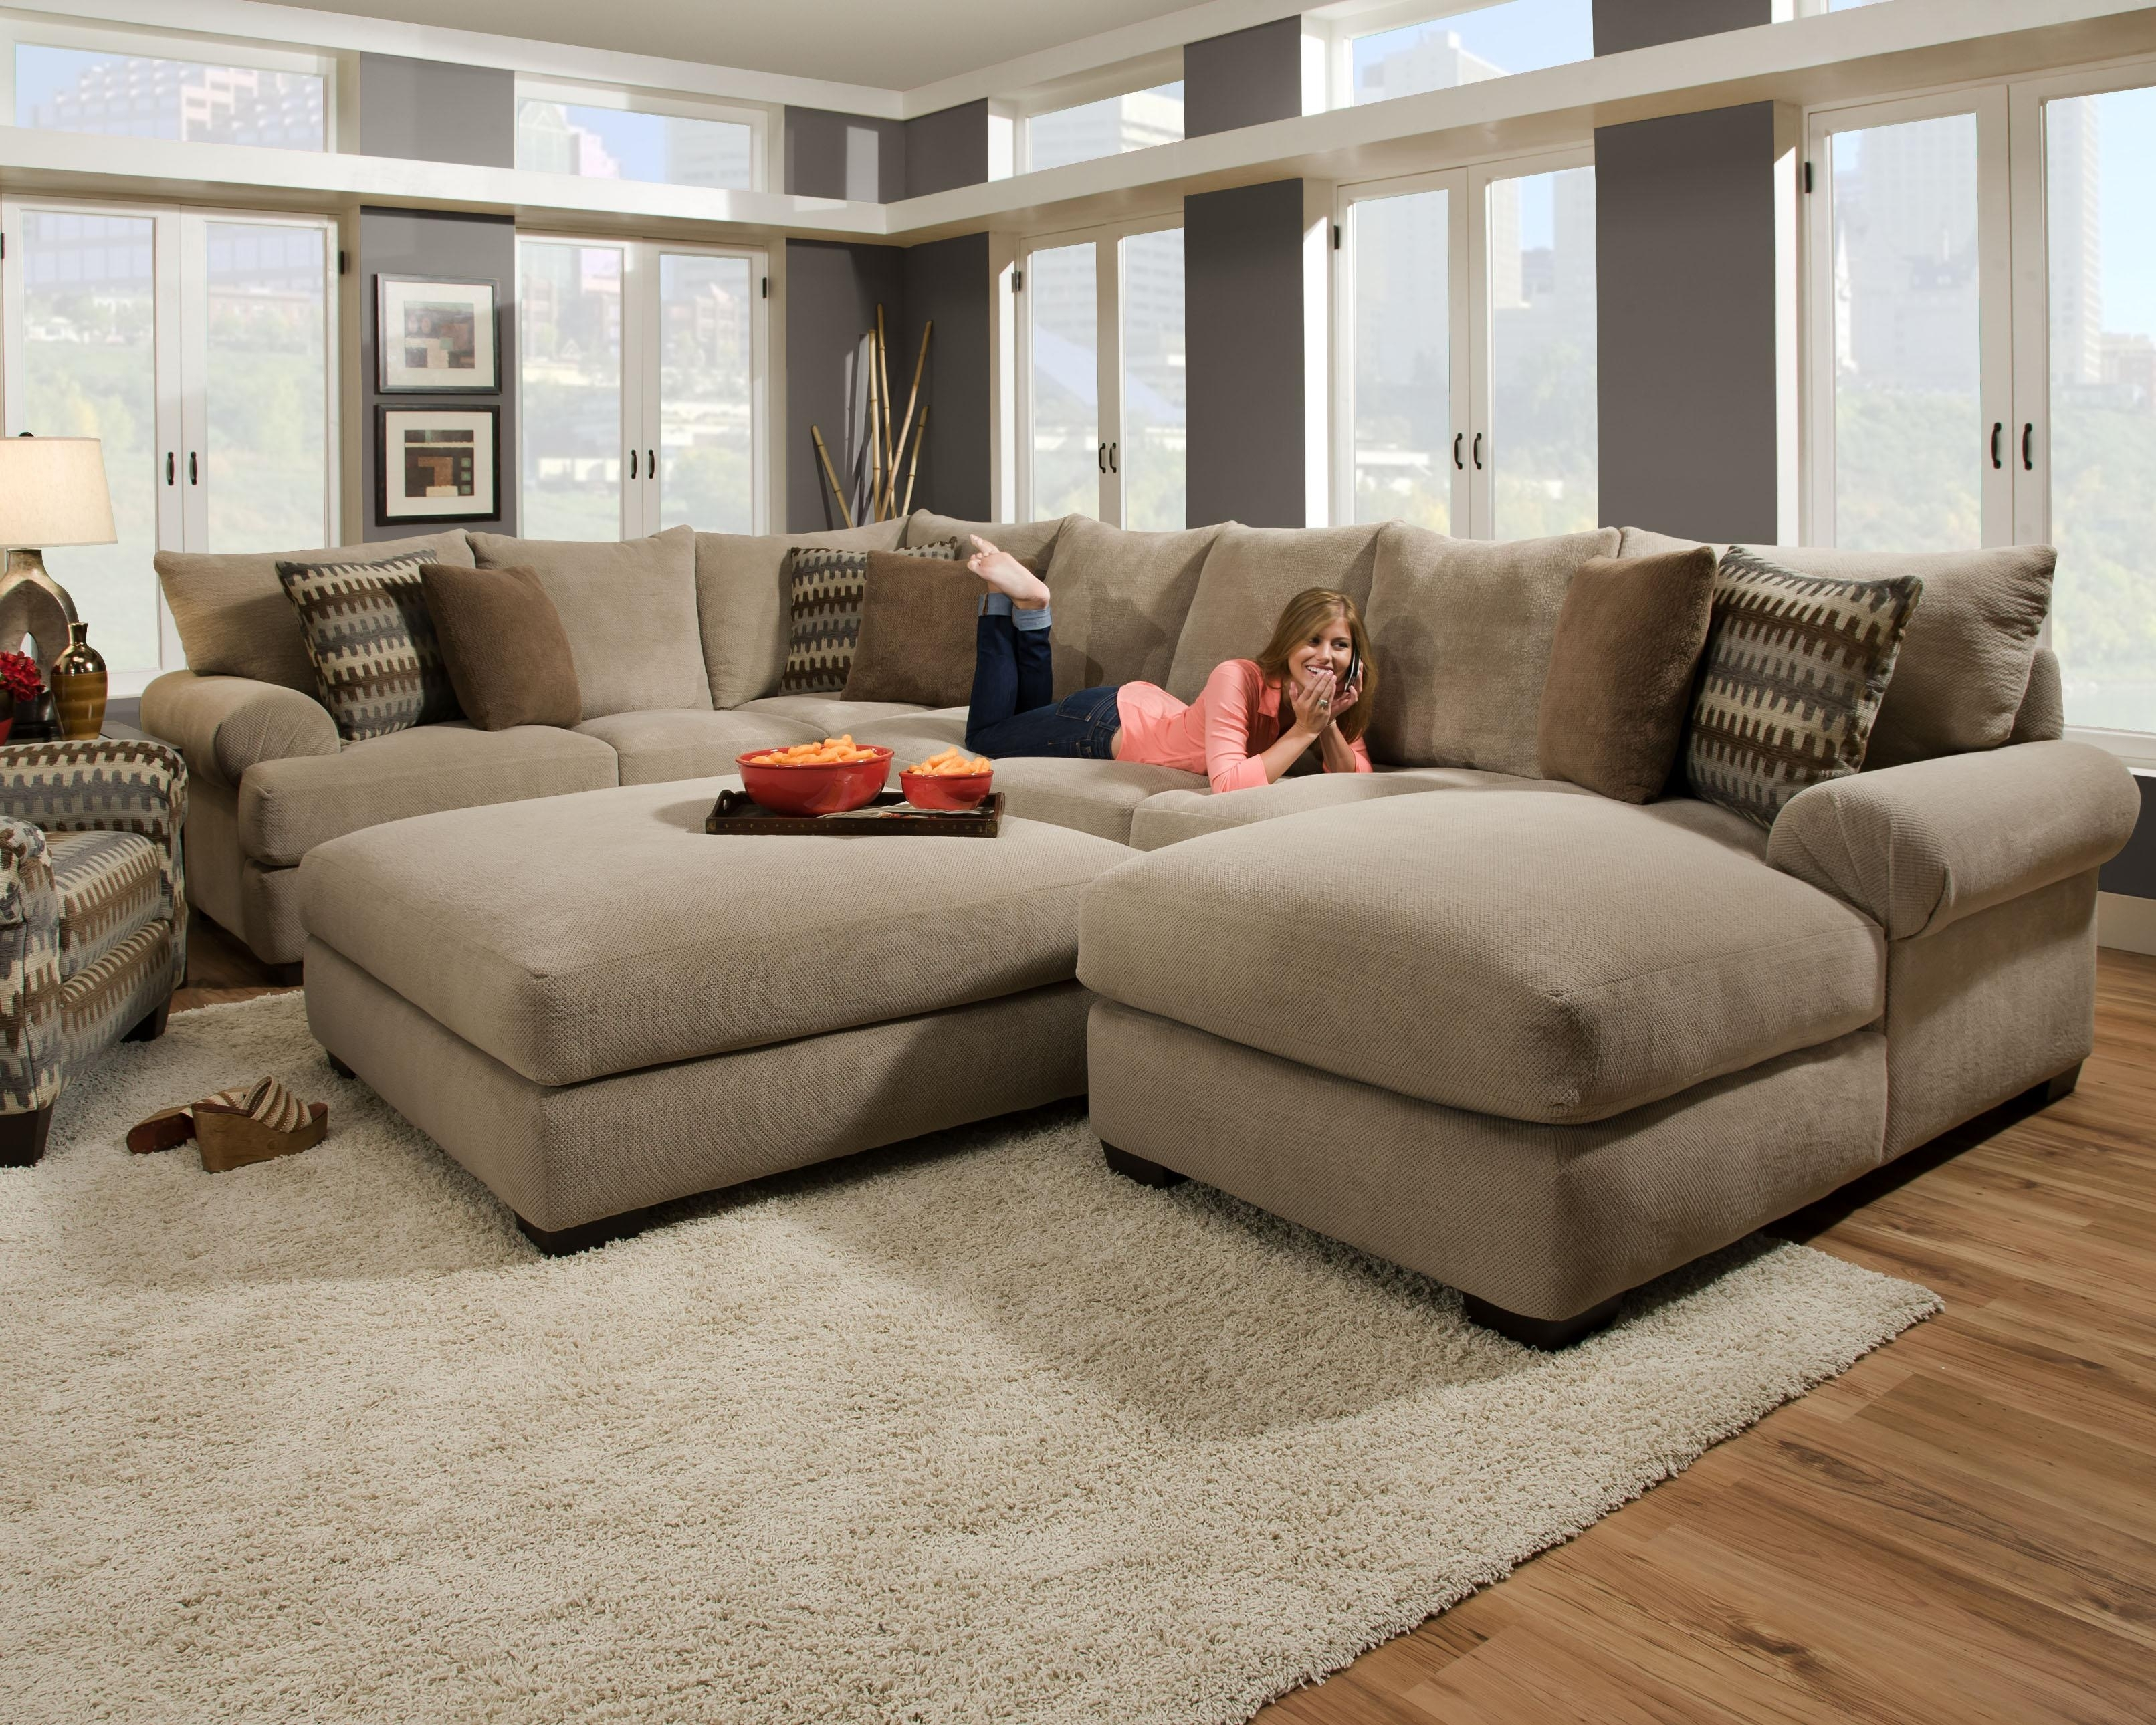 Corinthian 61A0 Sectional Sofa With Right Side Chaise | Furniture throughout Wilmington Nc Sectional Sofas (Image 7 of 10)